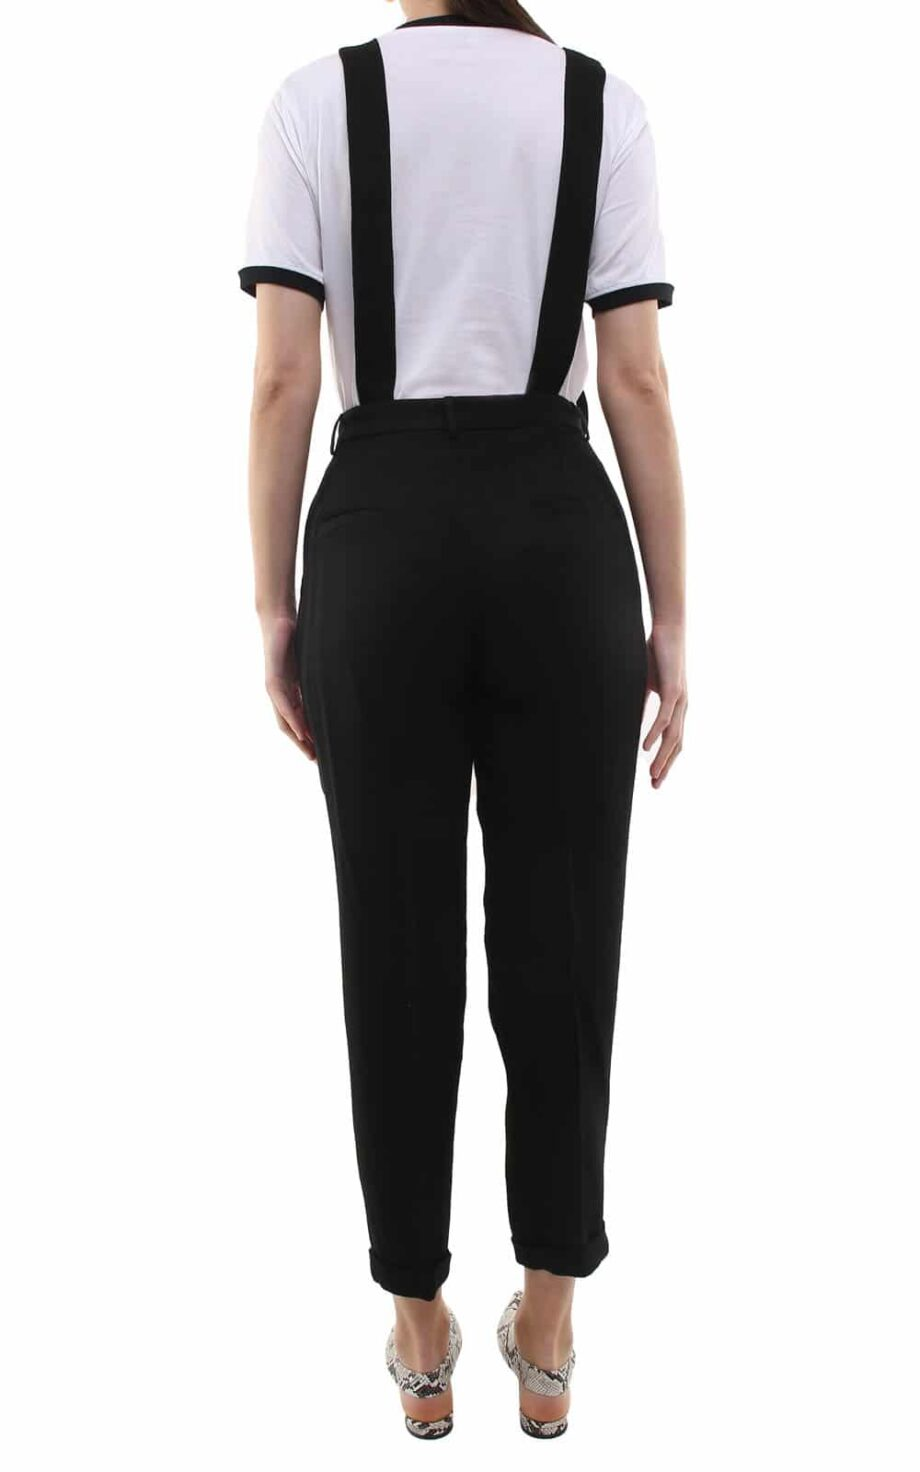 Jane trousers w/ removable suspenders black